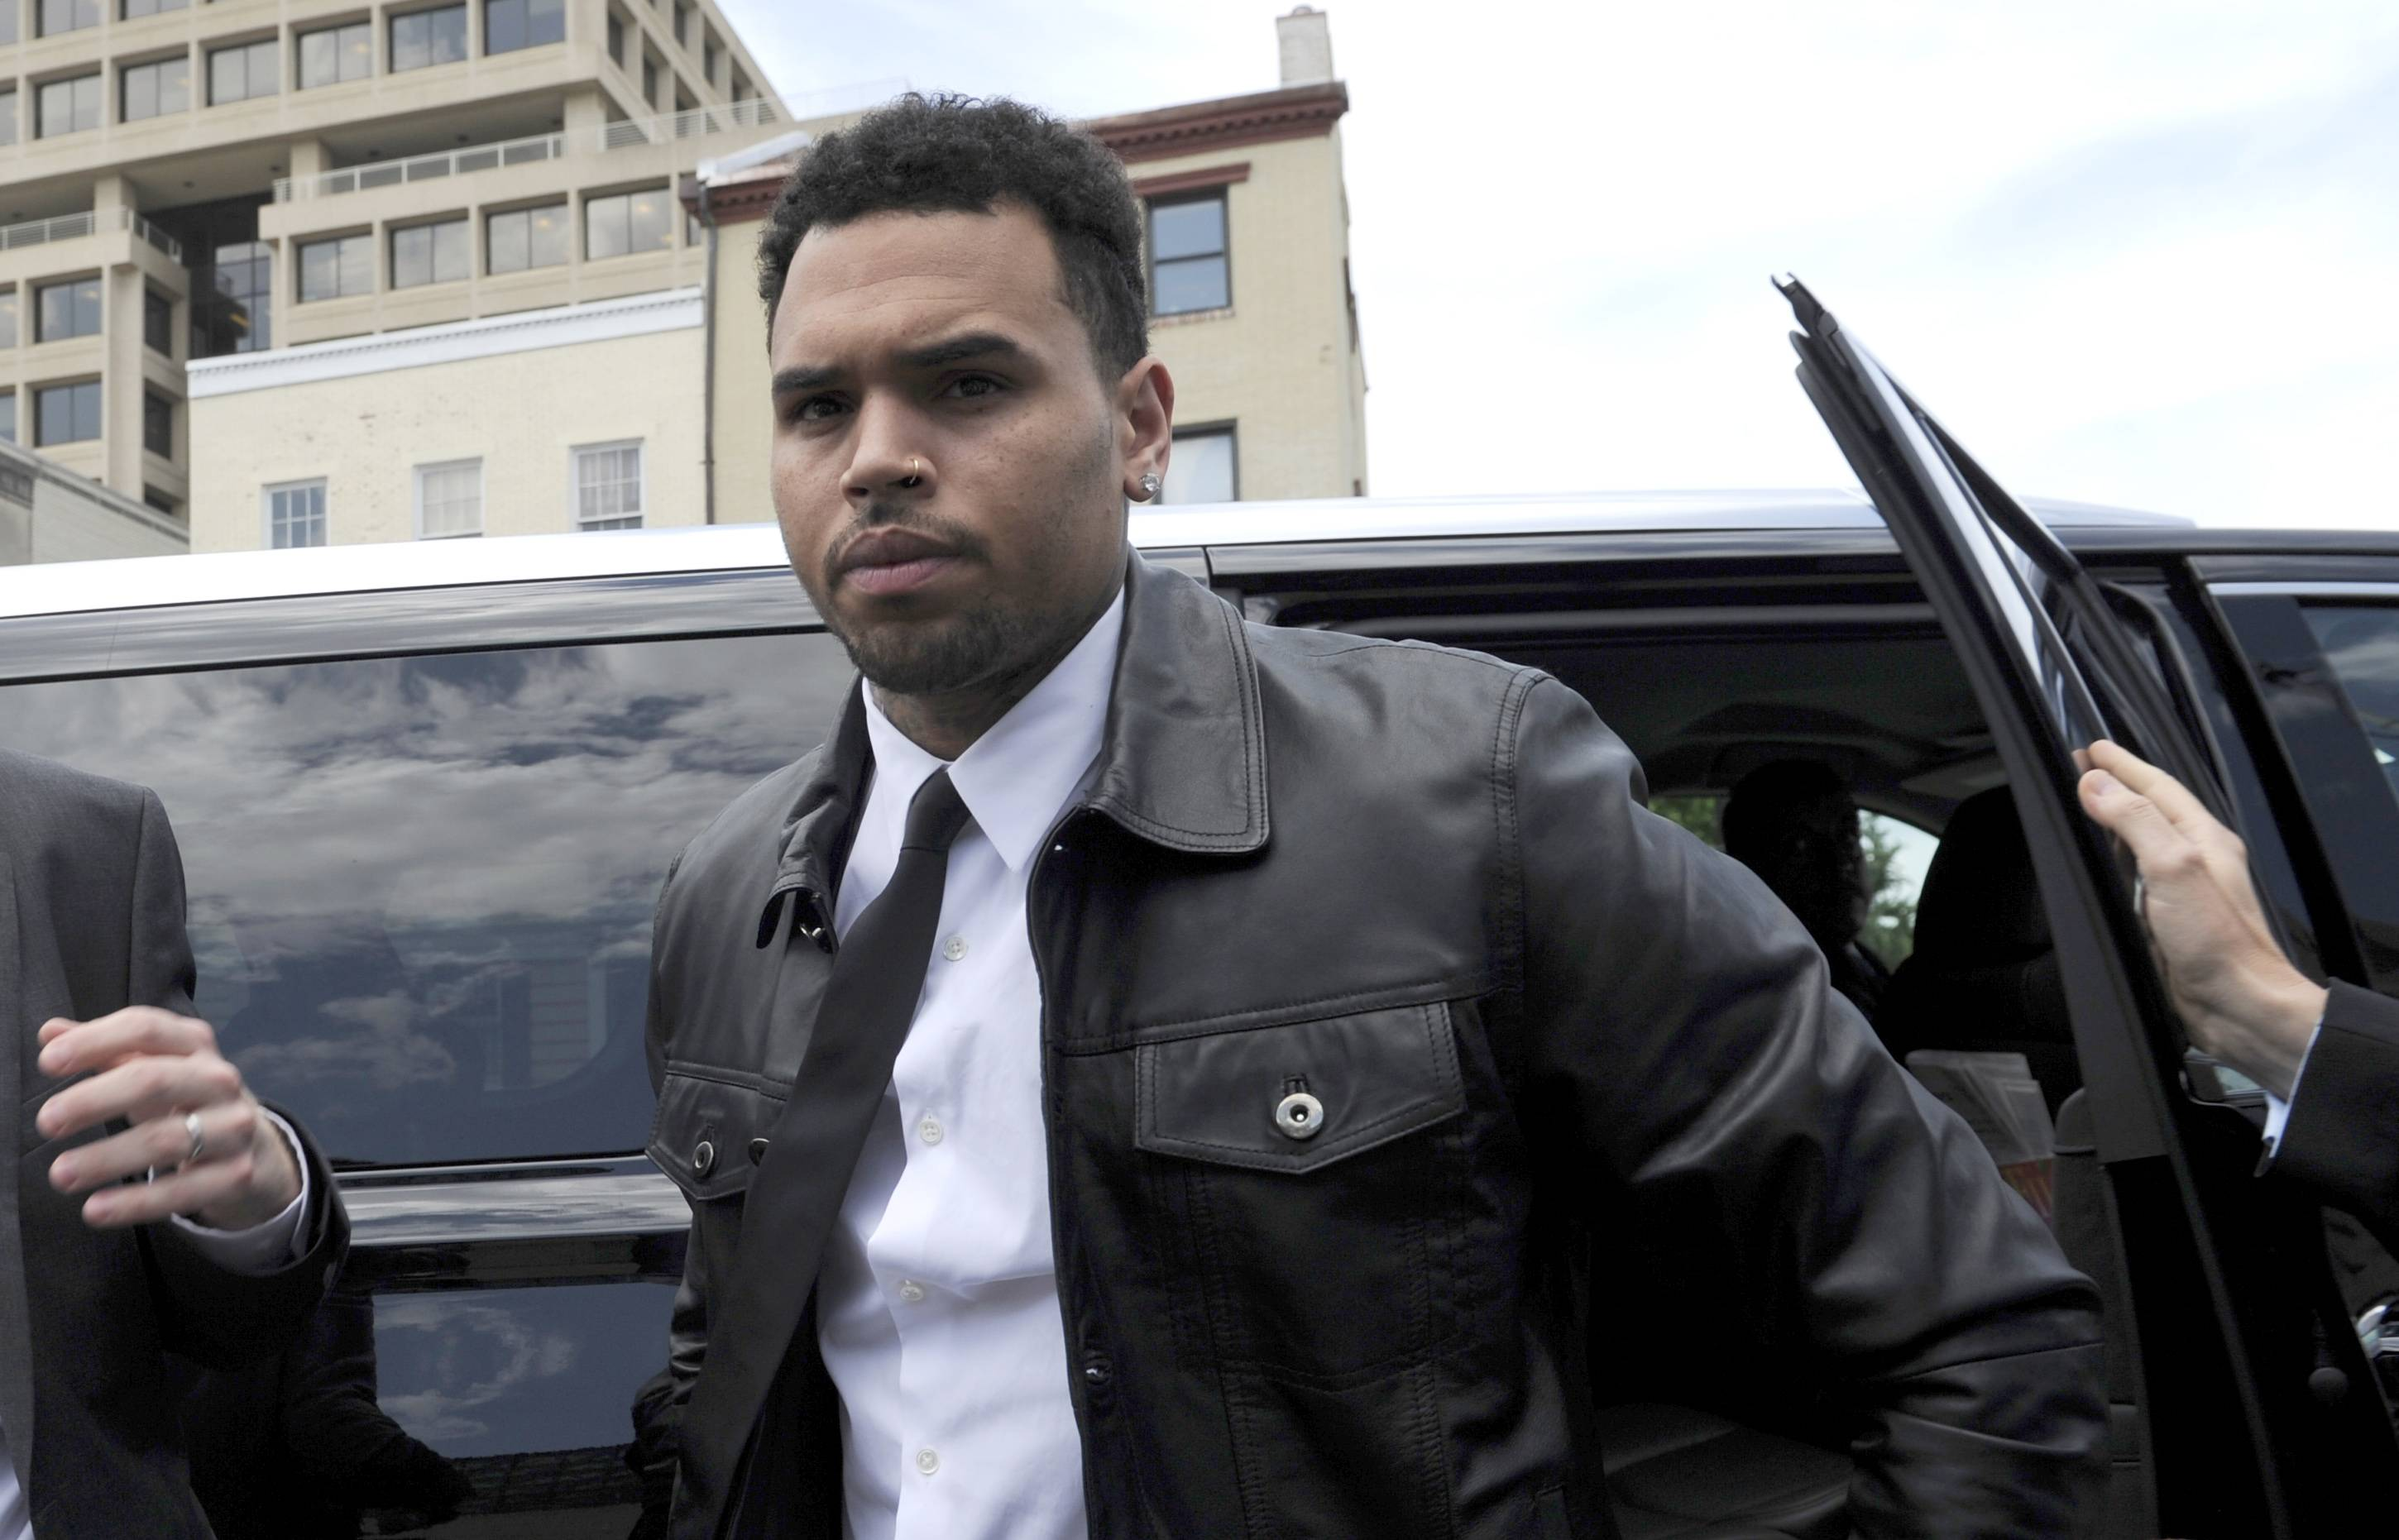 Singer Chris Brown arrives at the D.C. Superior Court in Washington Wednesday for a hearing on the assault charge he faces.